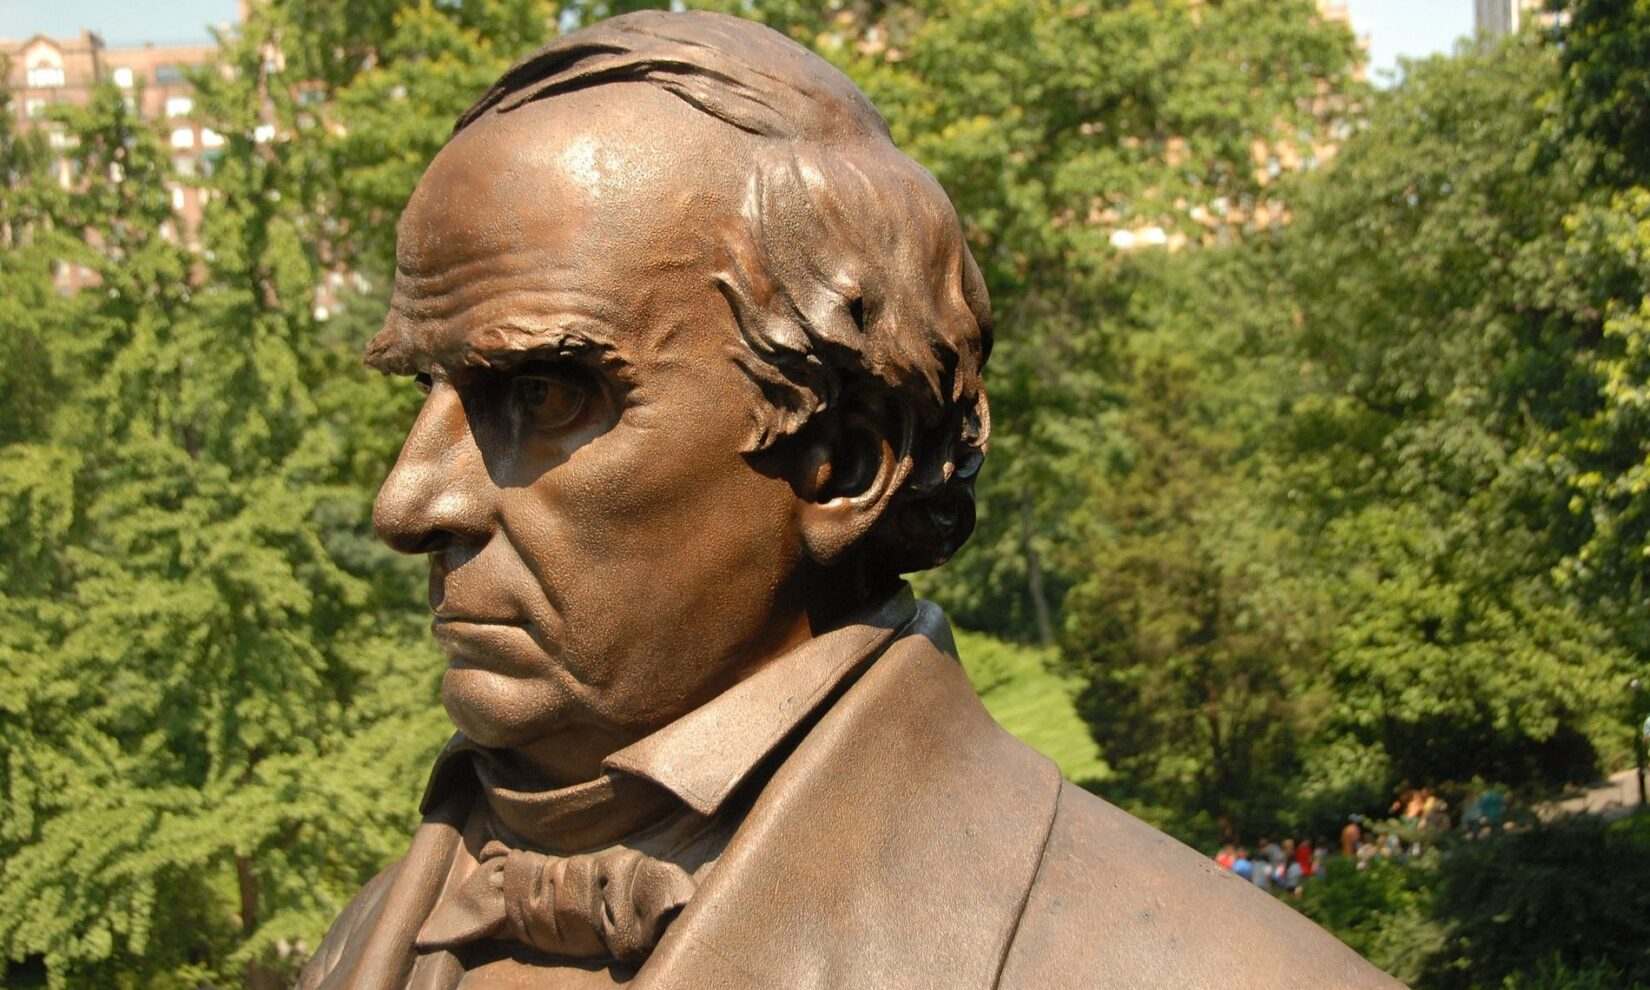 A closer view of Webster's profile against a blue sky and greenery.